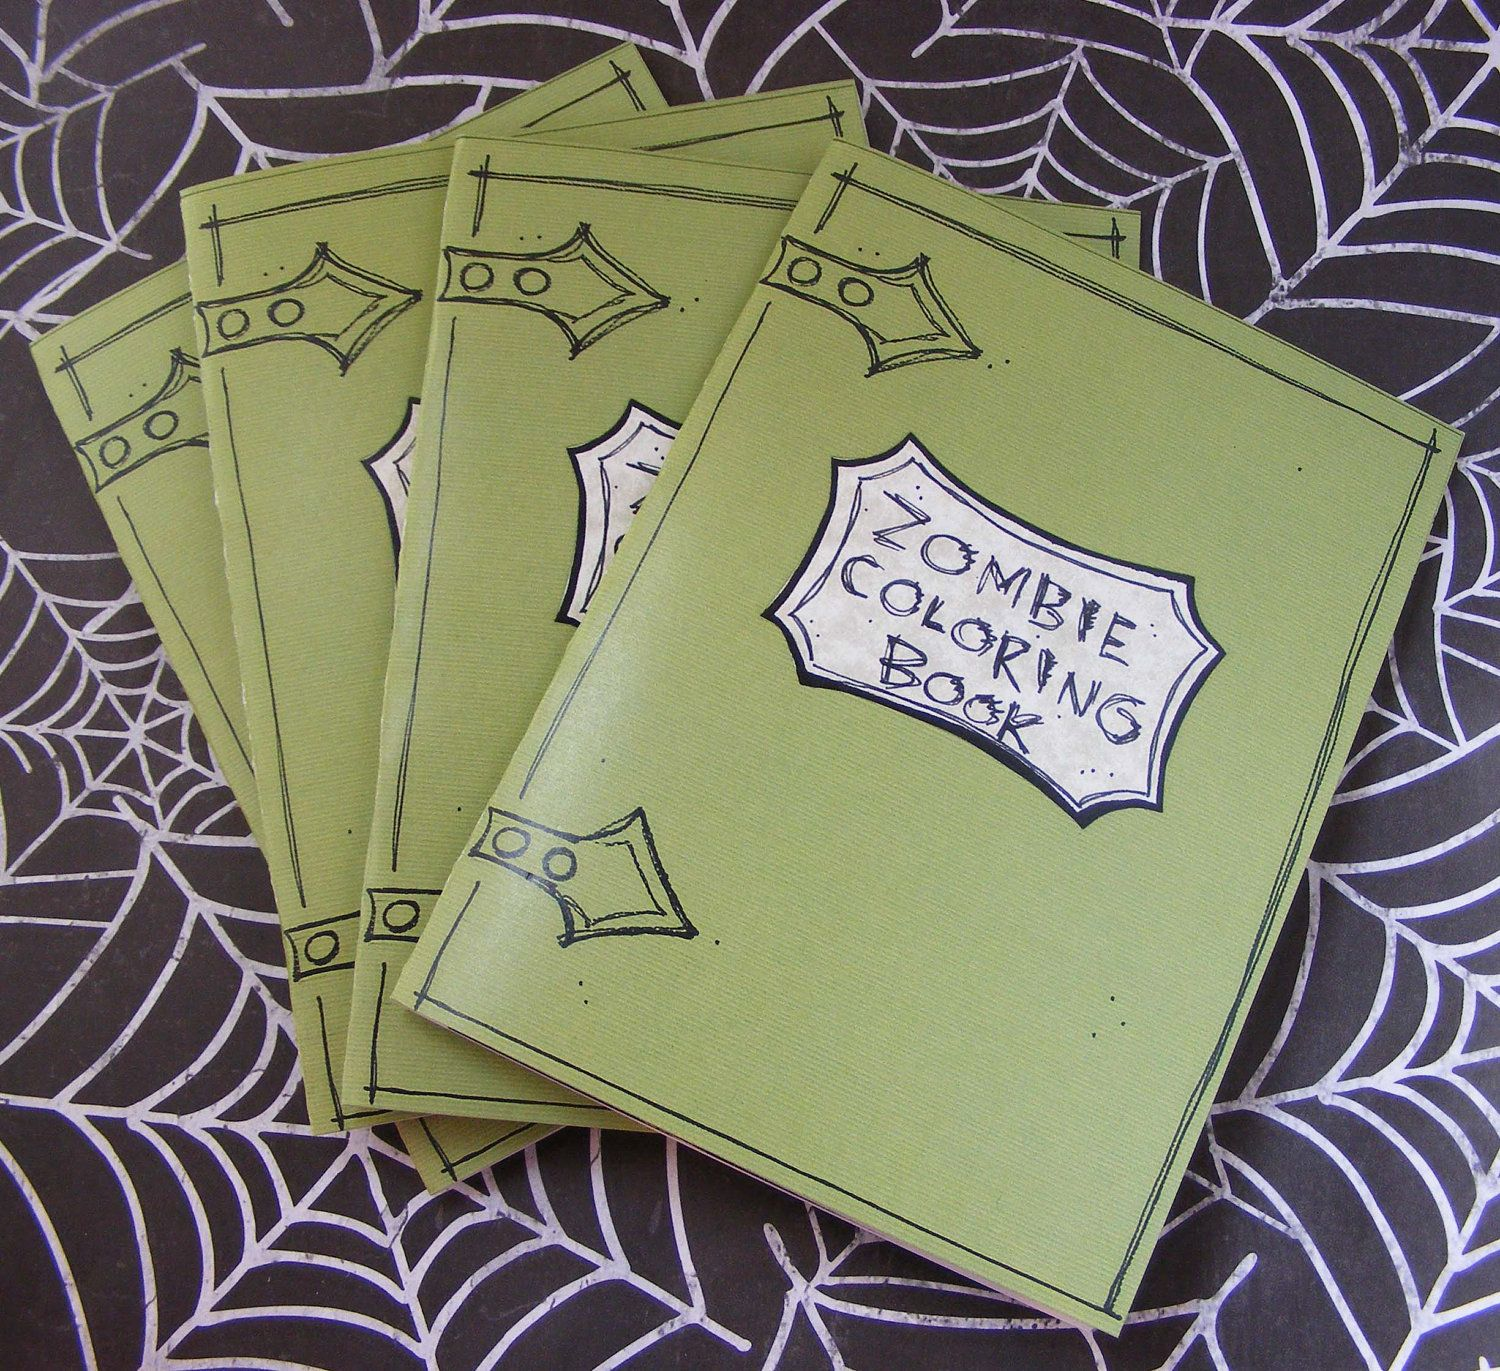 The zombie apocalypse coloring book - Zombie Coloring Book By Partyon On Etsy 4 00